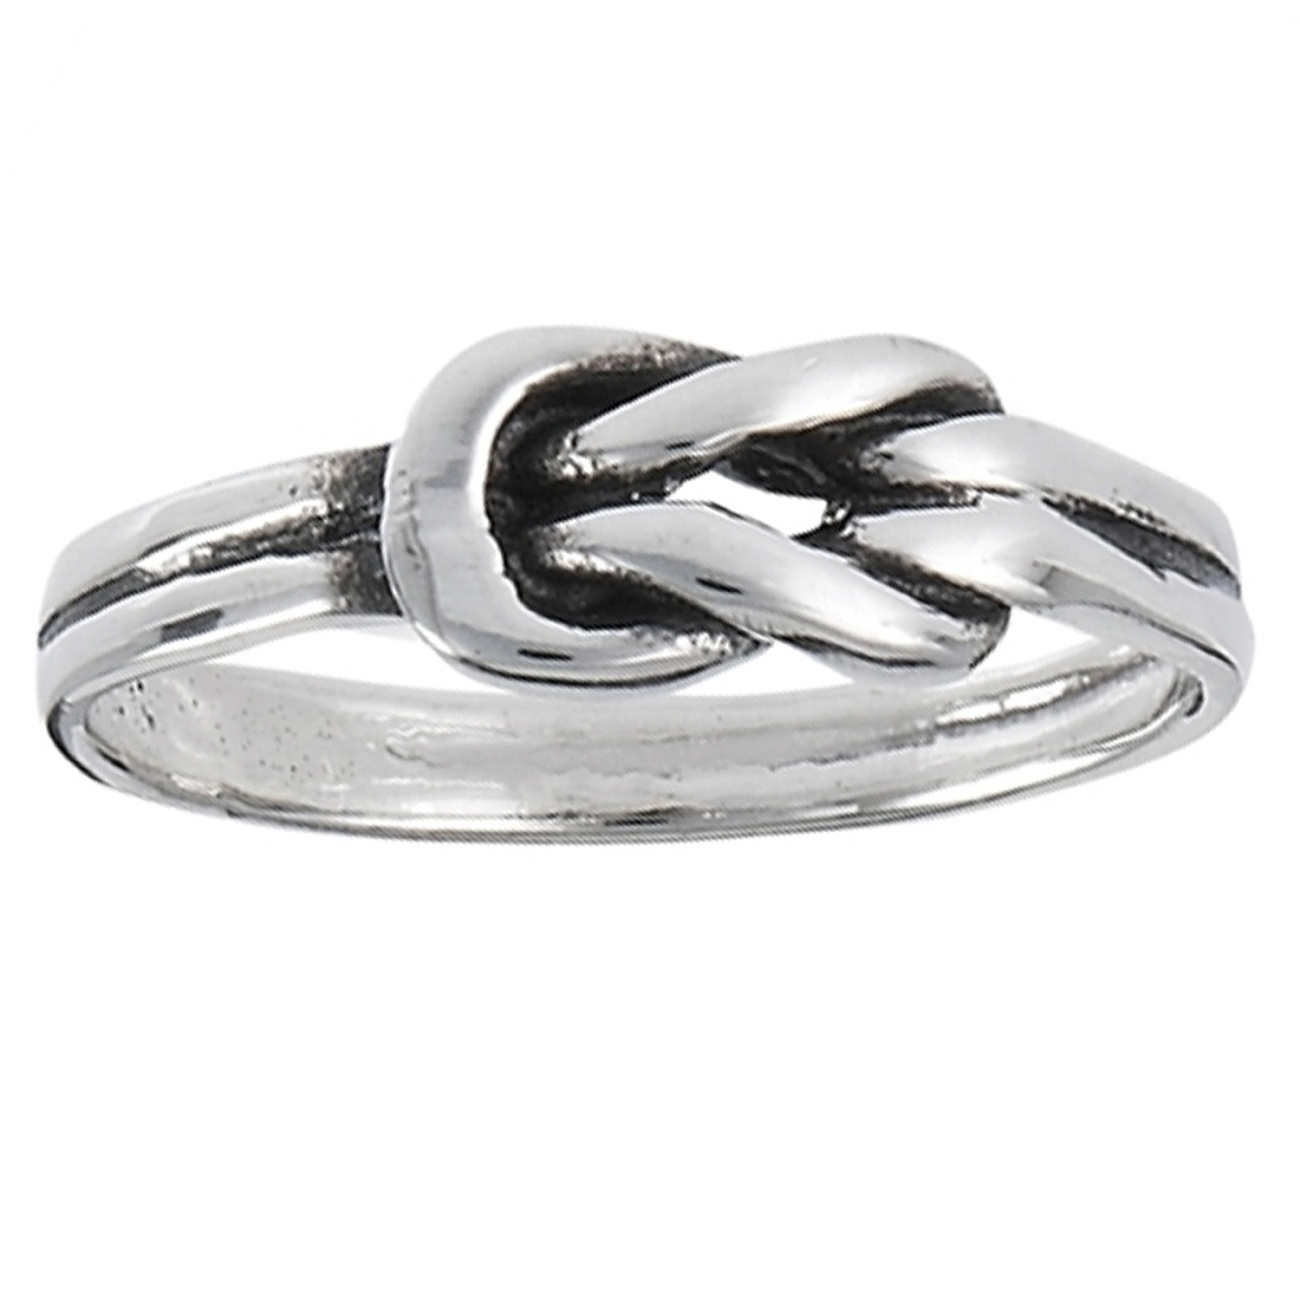 Square Knot Infinity Symbol Knot Ring